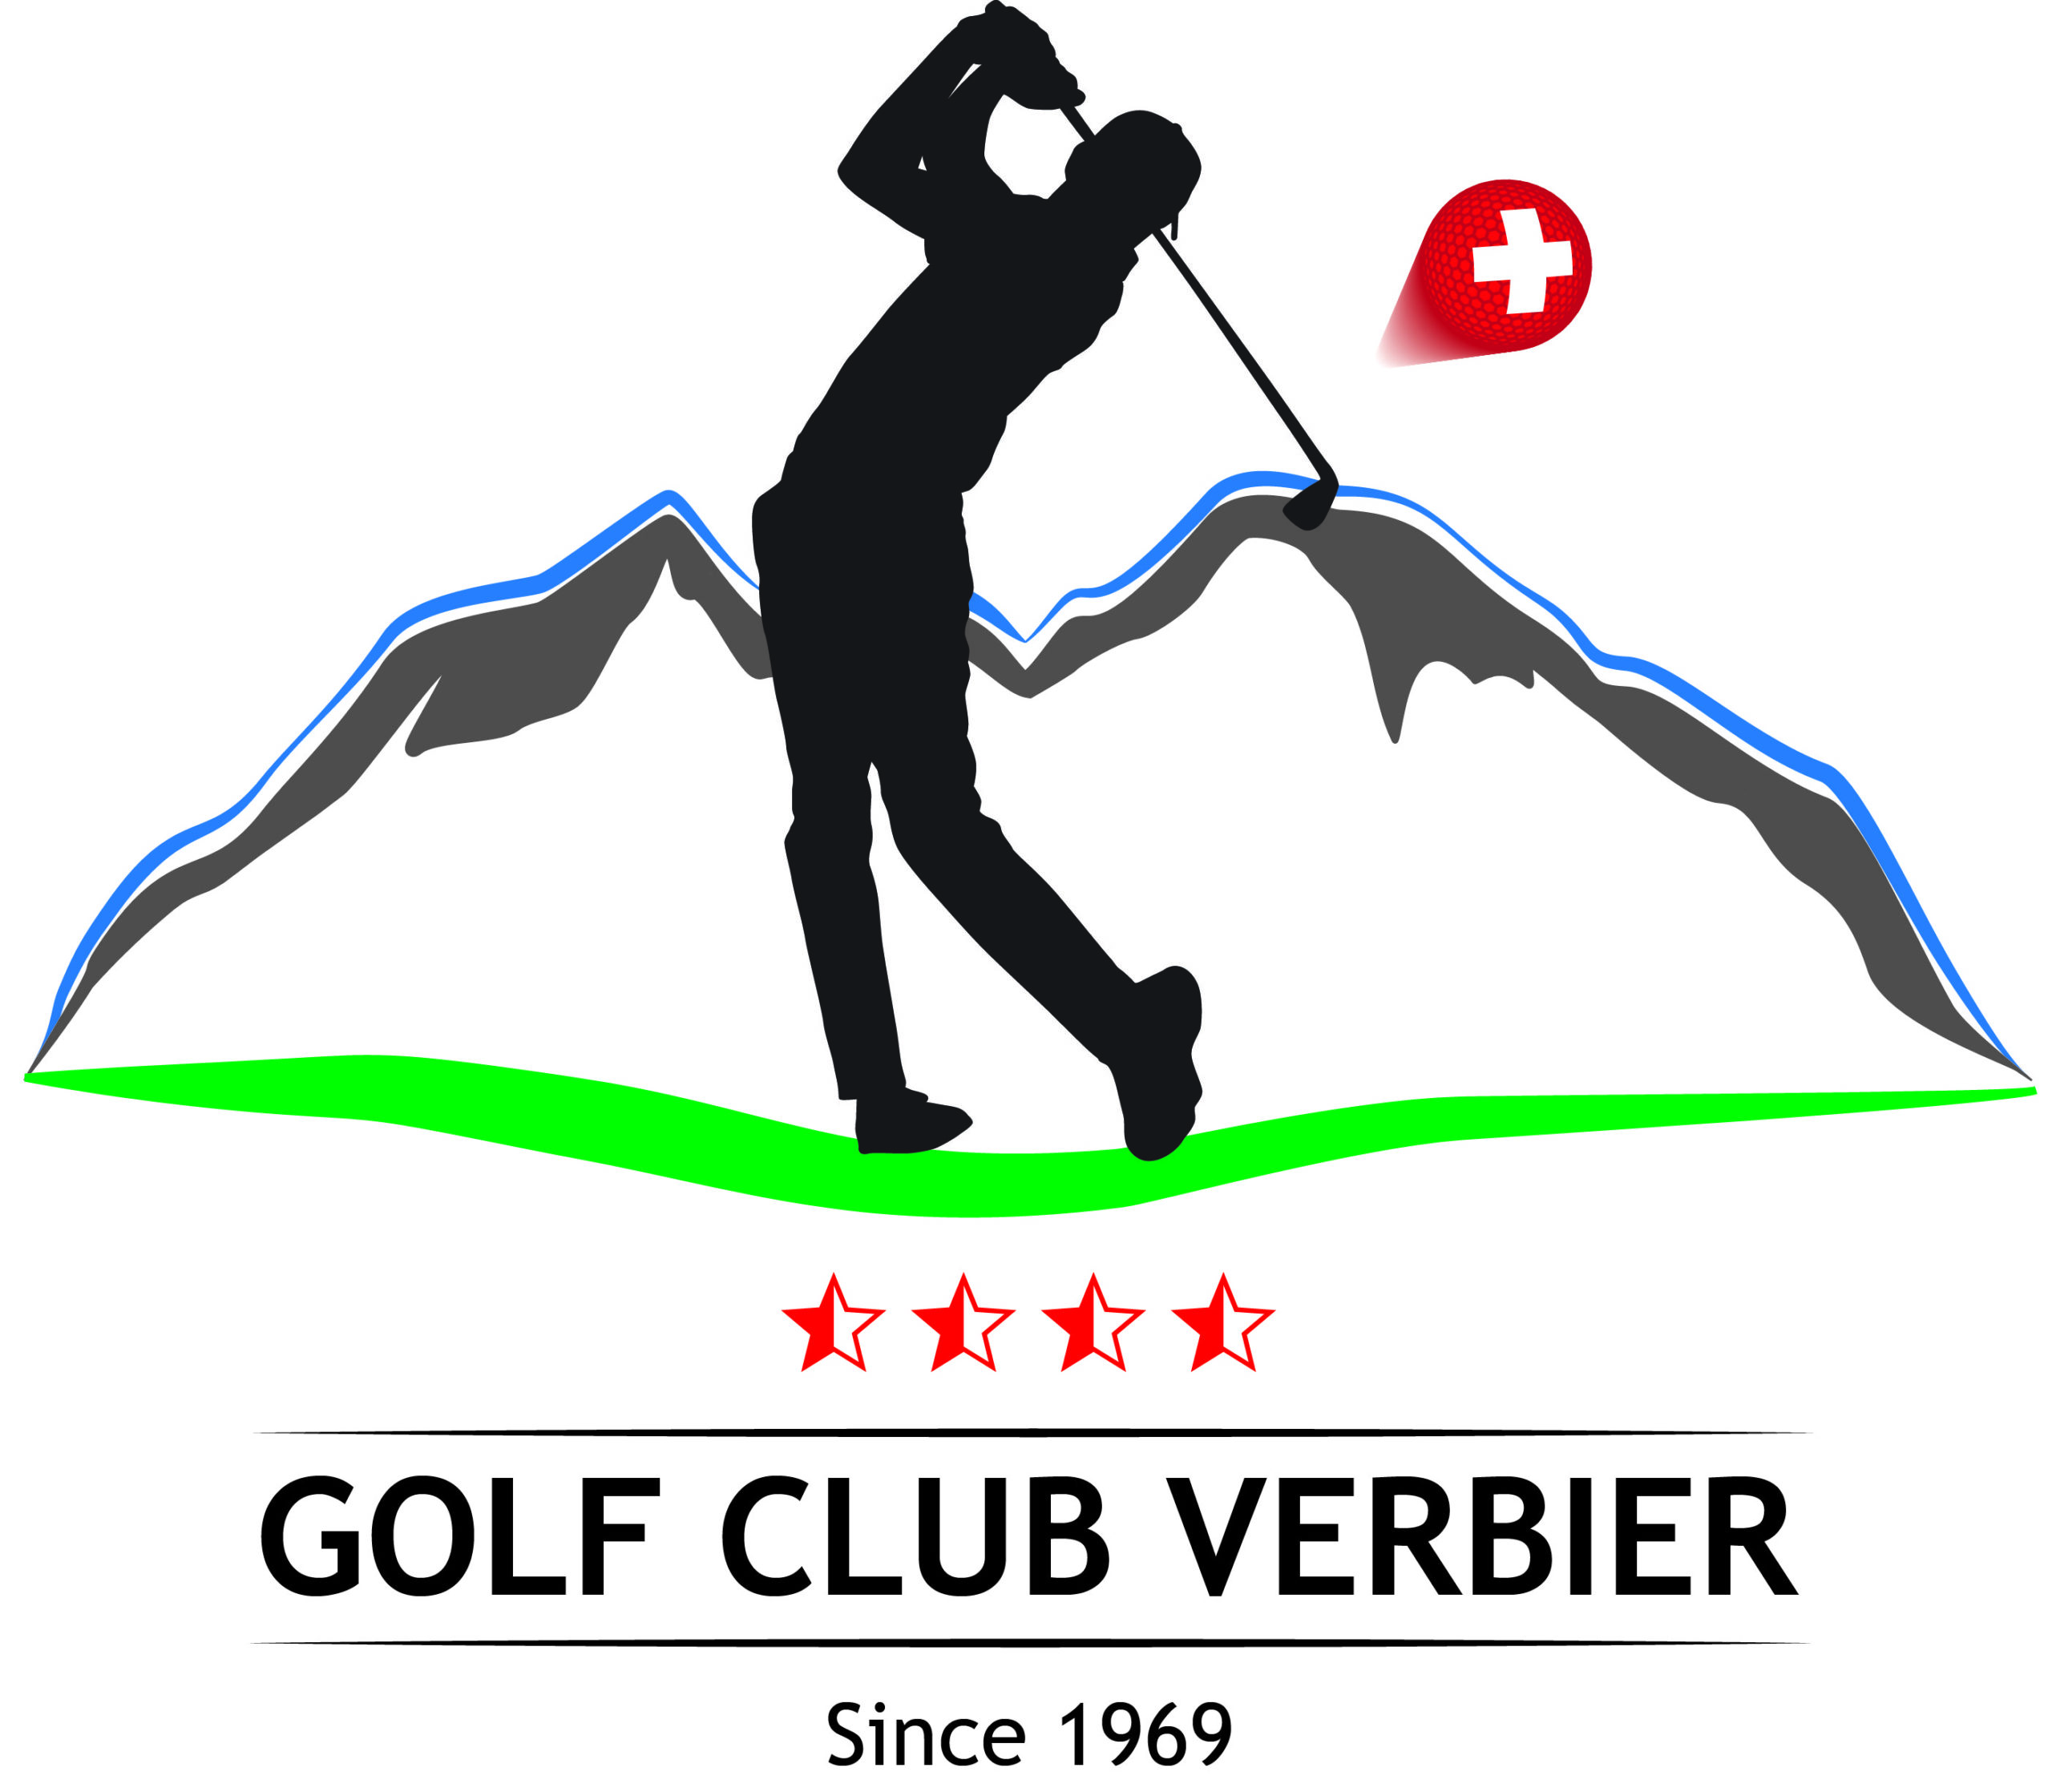 Golf Club Verbier